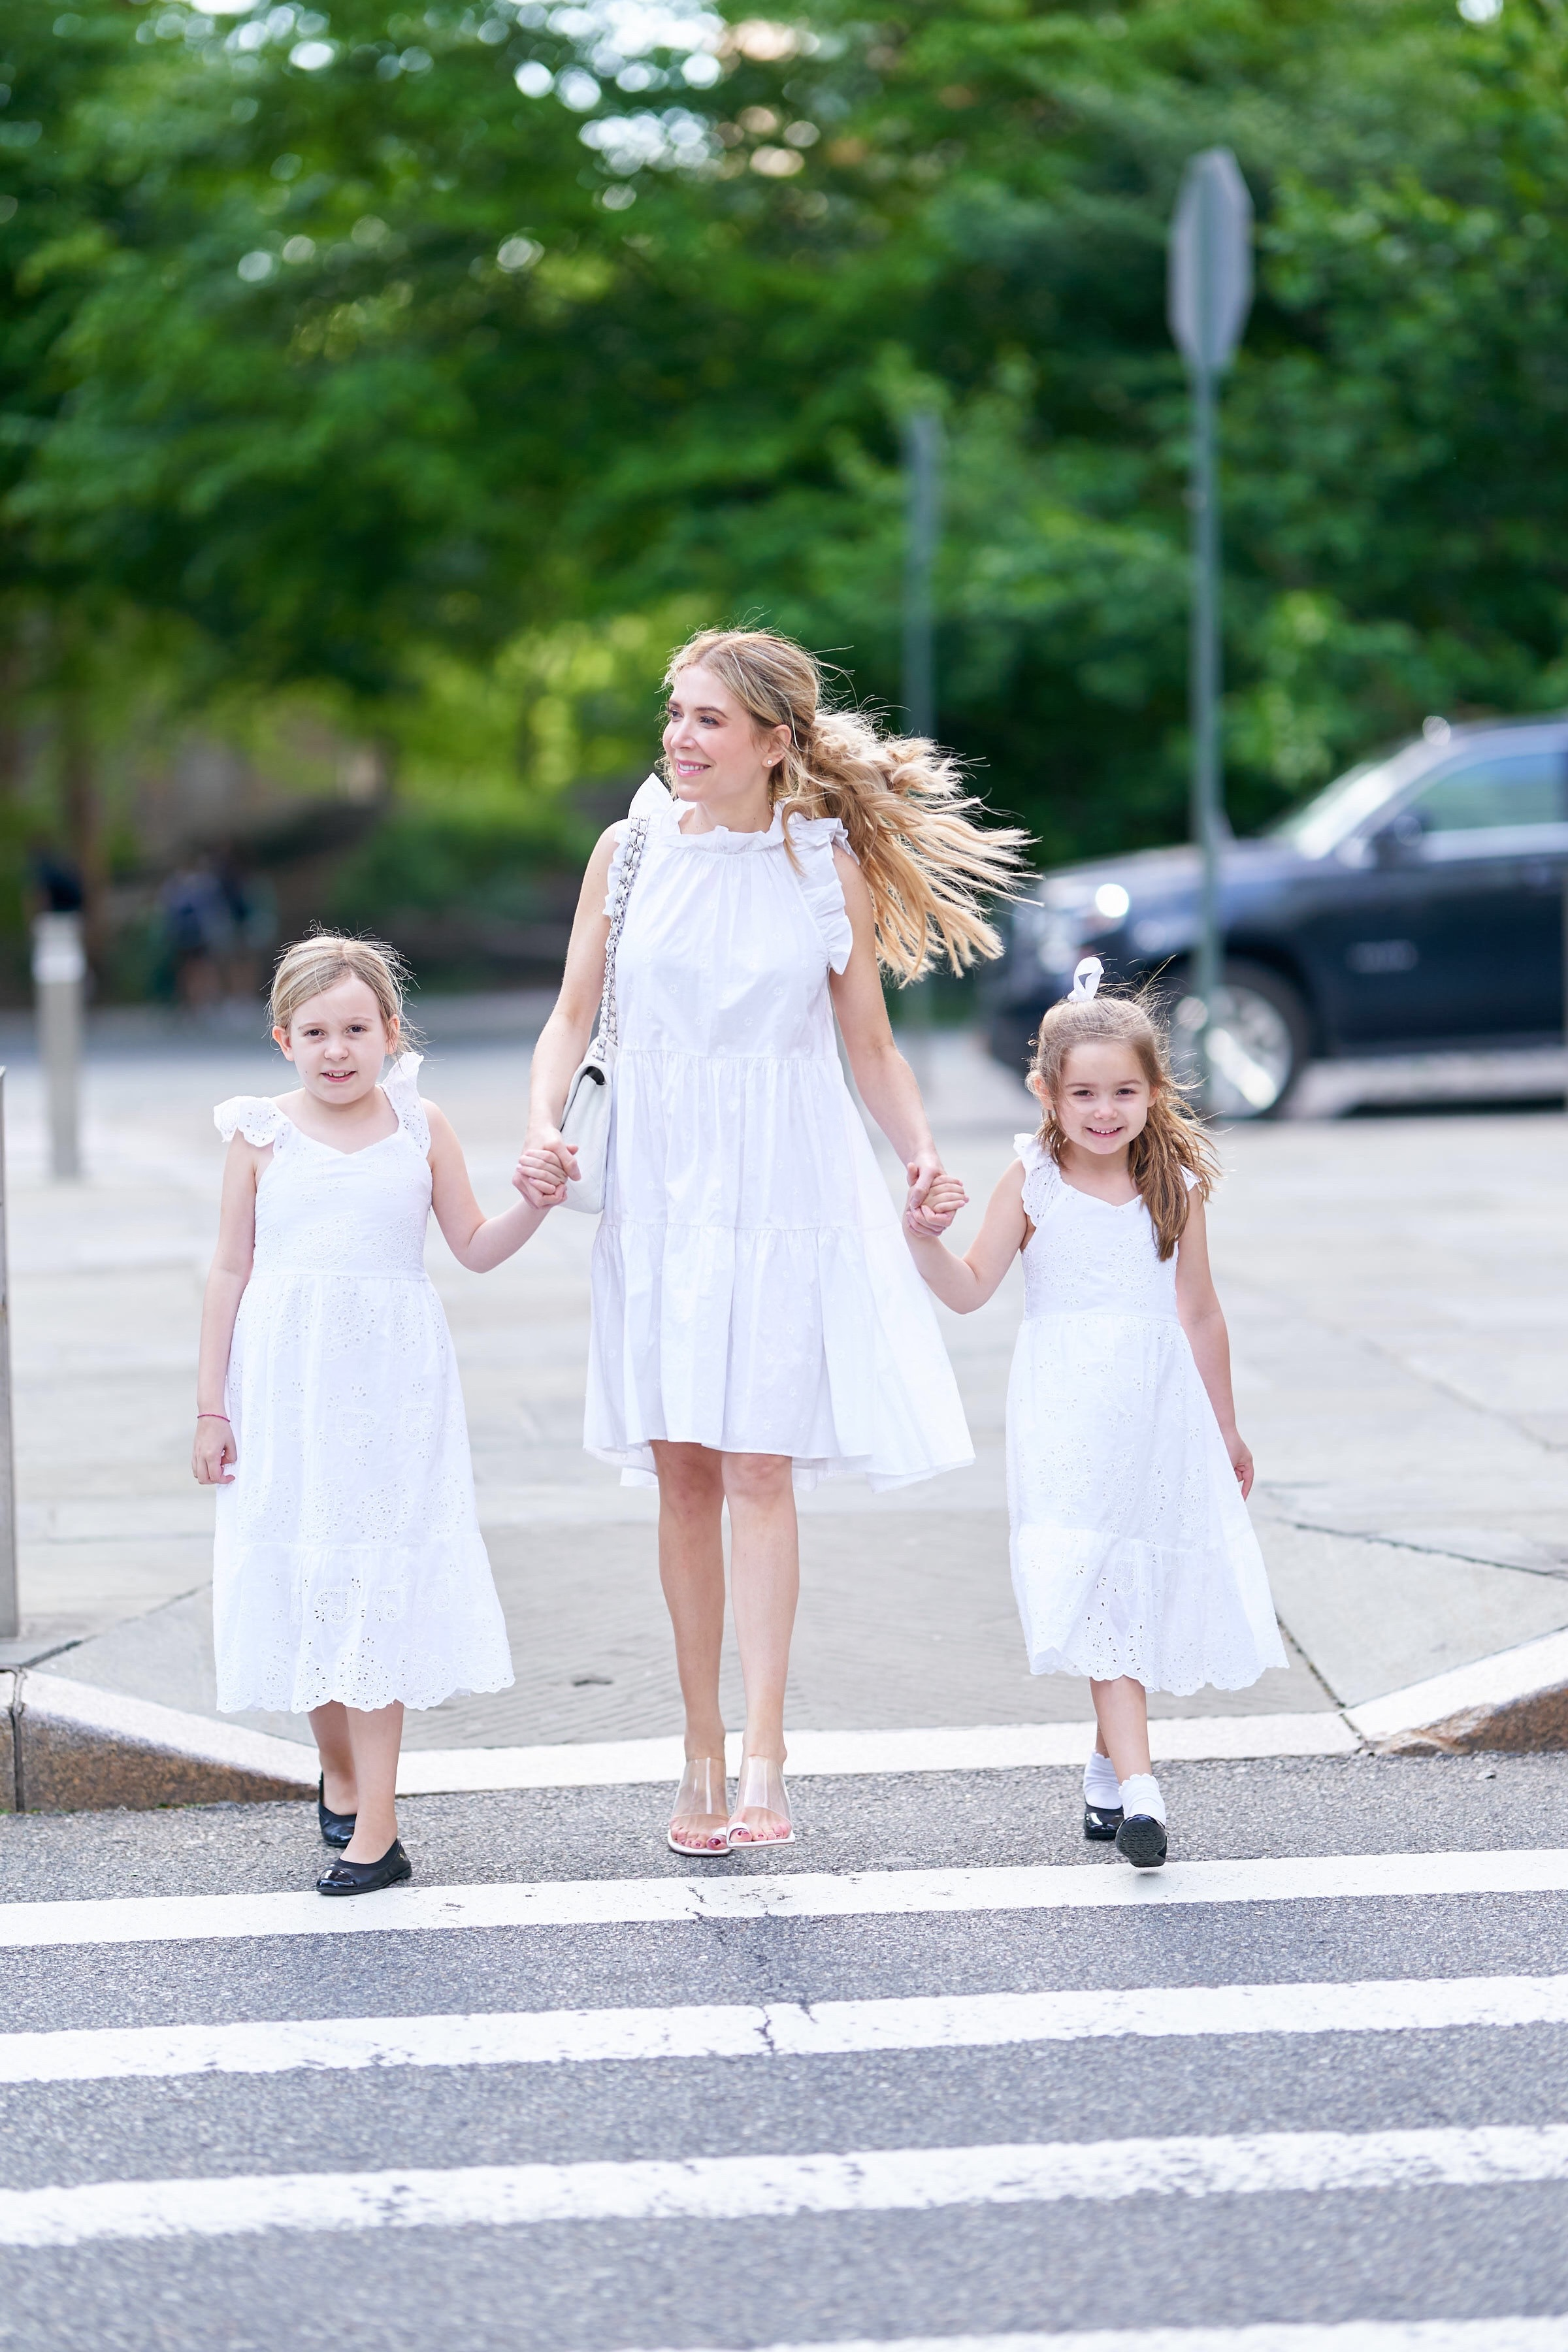 About the Outfits, Laura Bonner, Mommy daughter style, white dresses, www.abouttheoutfits.com